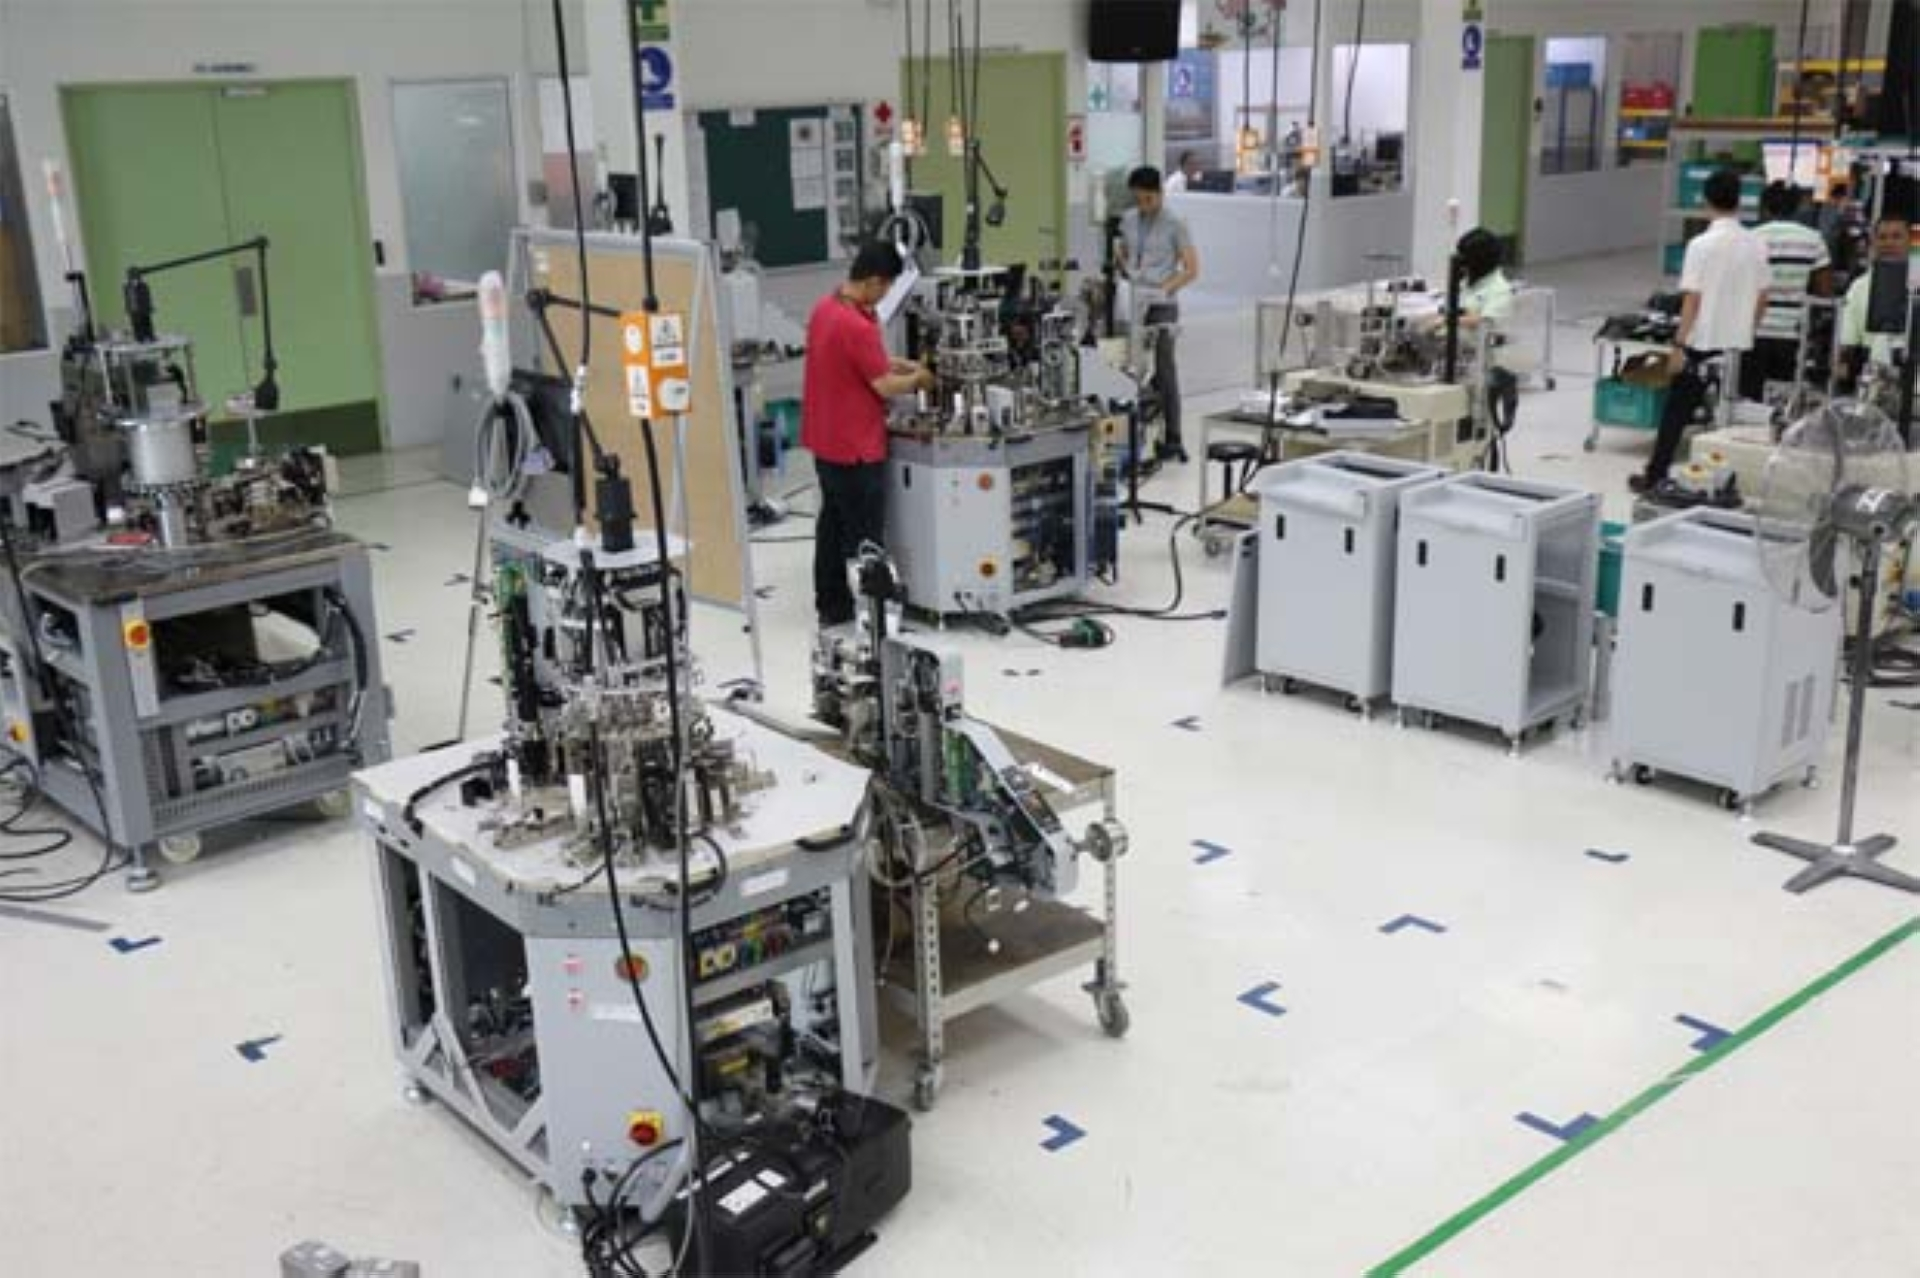 Pentamaster technicians working on test equipment to be used in the automotive and semiconductor industries. - Filepic